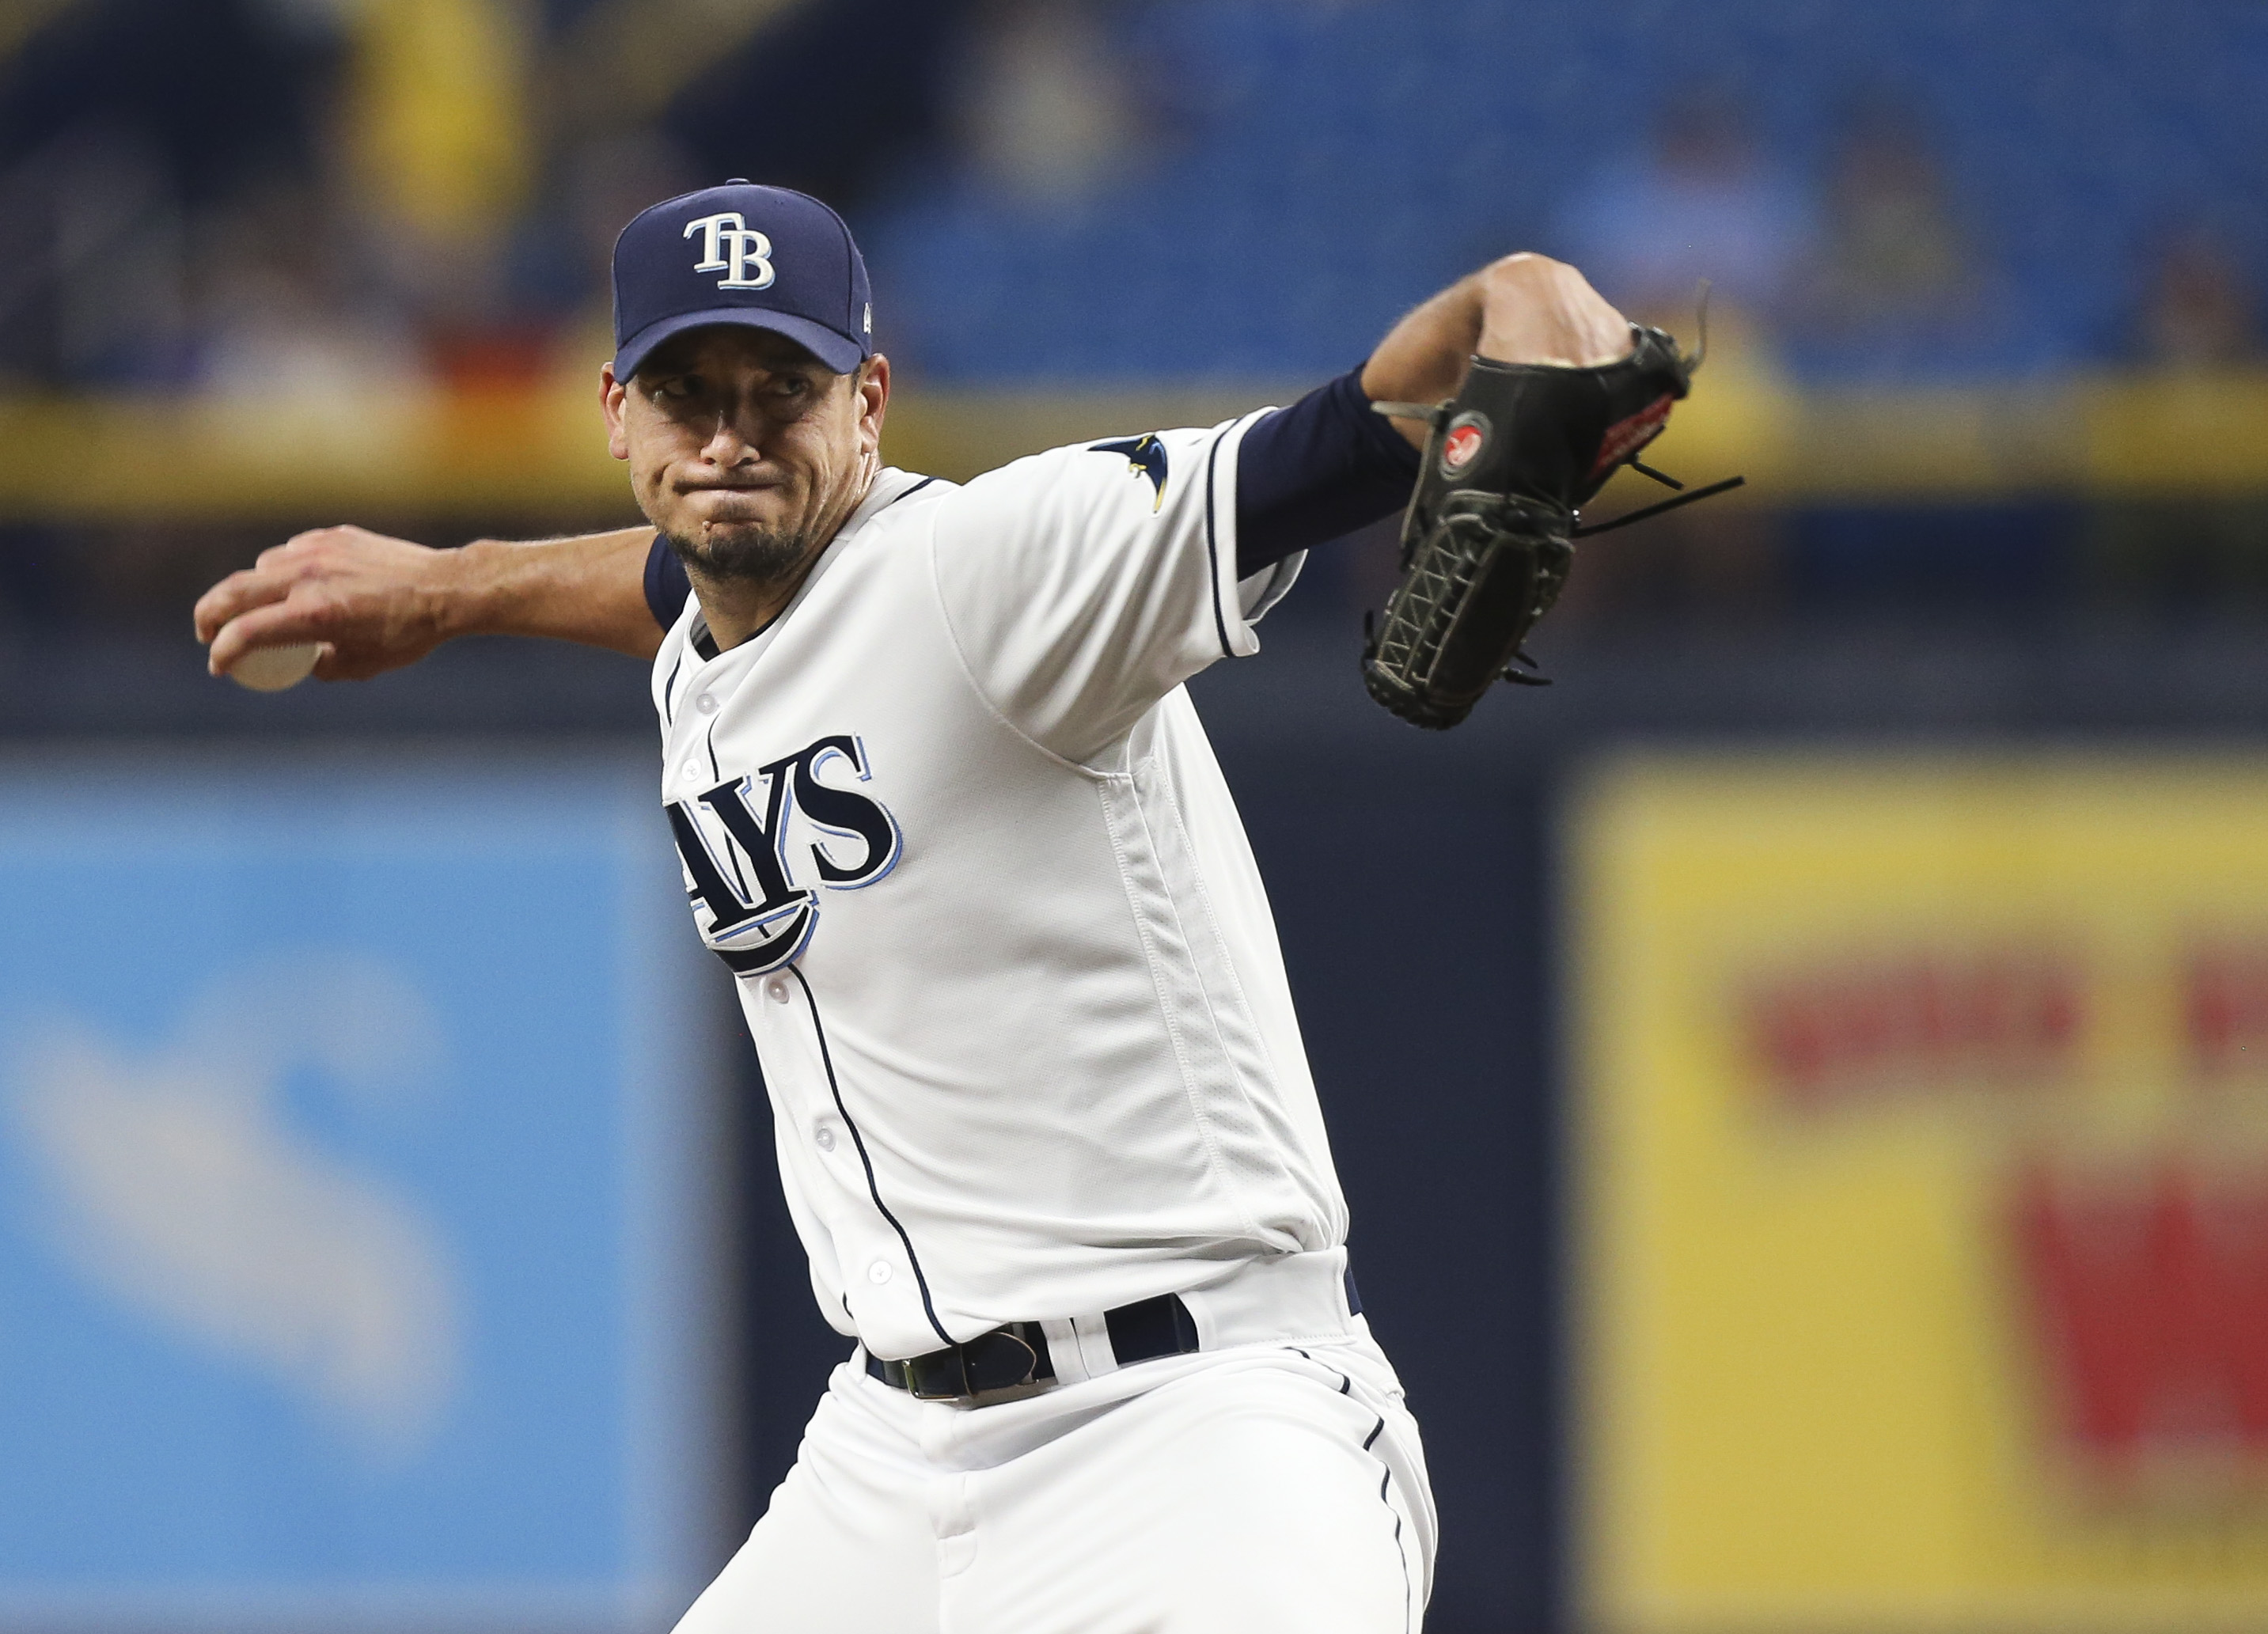 charlie morton delivers again as rays beat a s take over first in al east https www tampabay com sports rays 2019 06 11 charlie morton delivers again as rays beat as take over first in al east